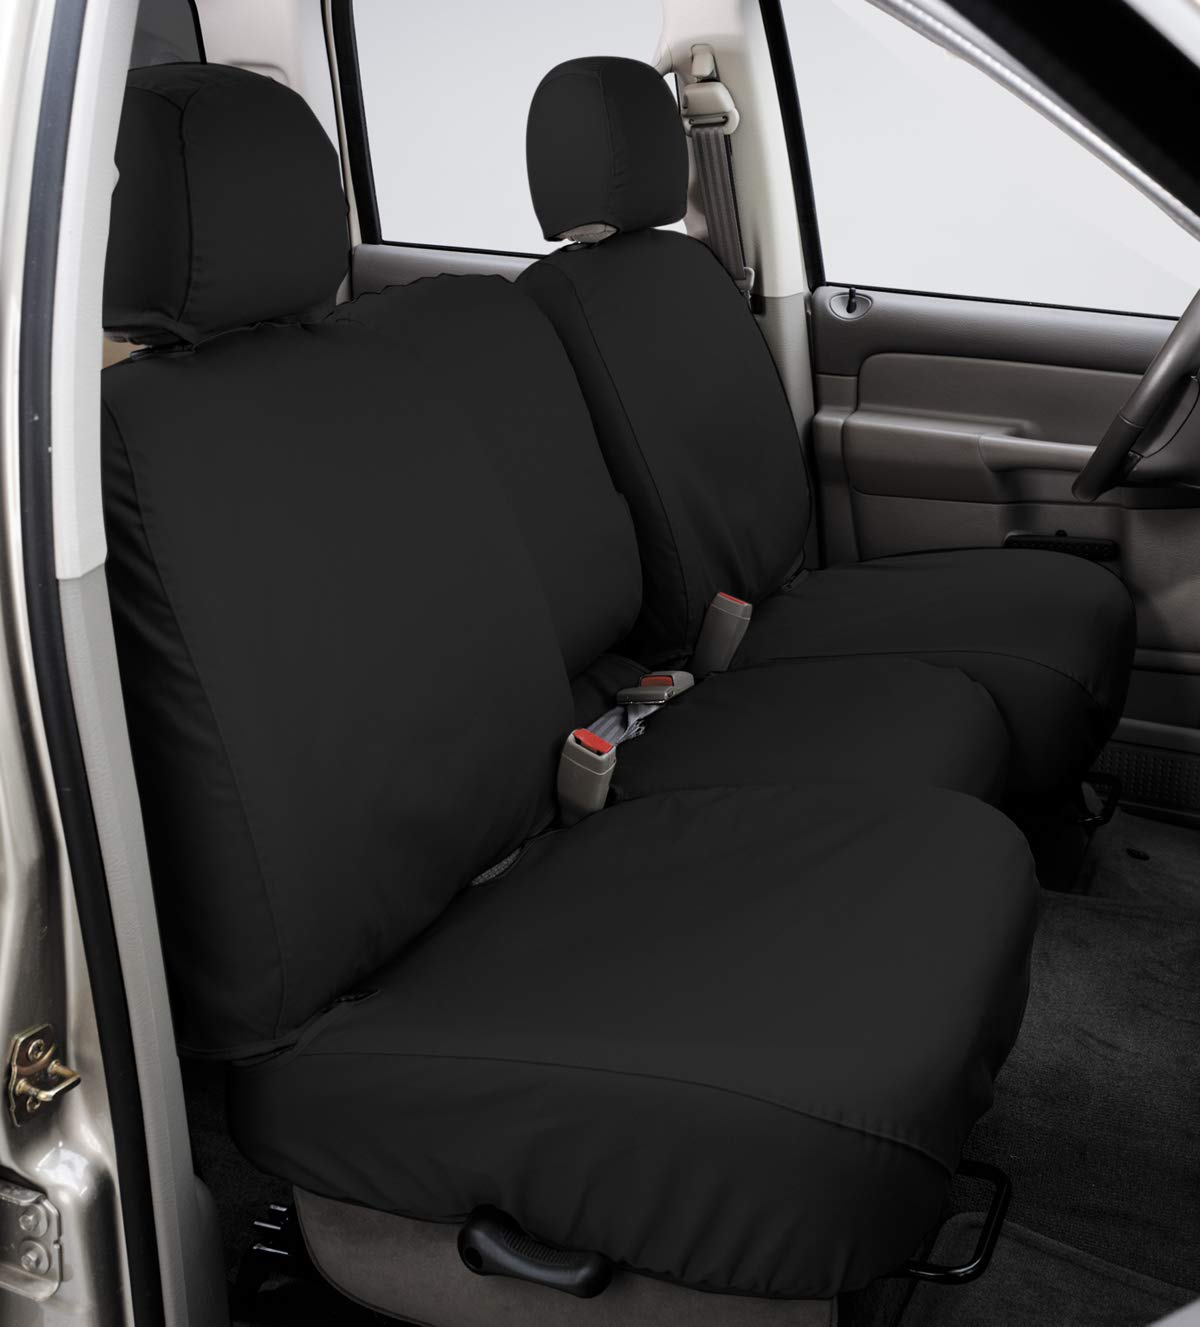 Covercraft SS7432PCCH SeatSaver Second Row Custom Fit Seat Cover for Select Ram 1500 Models Charcoal Polycotton